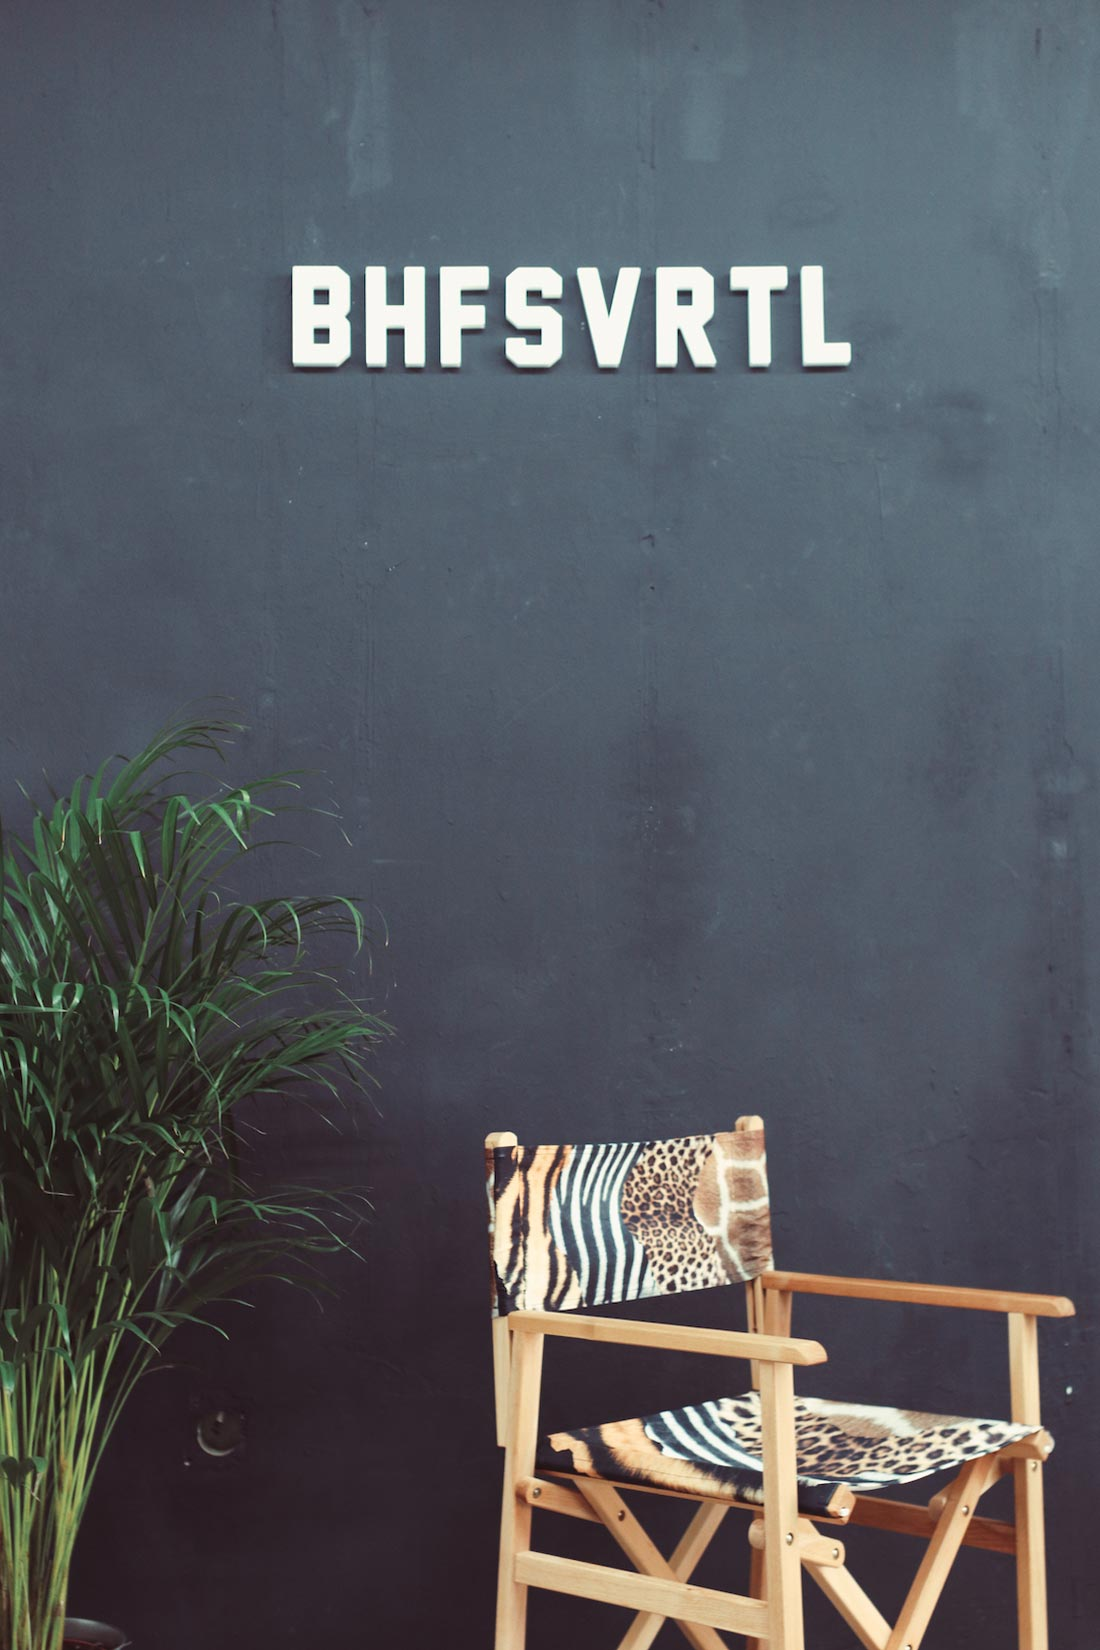 BHFSVRTL Pop-Up Store